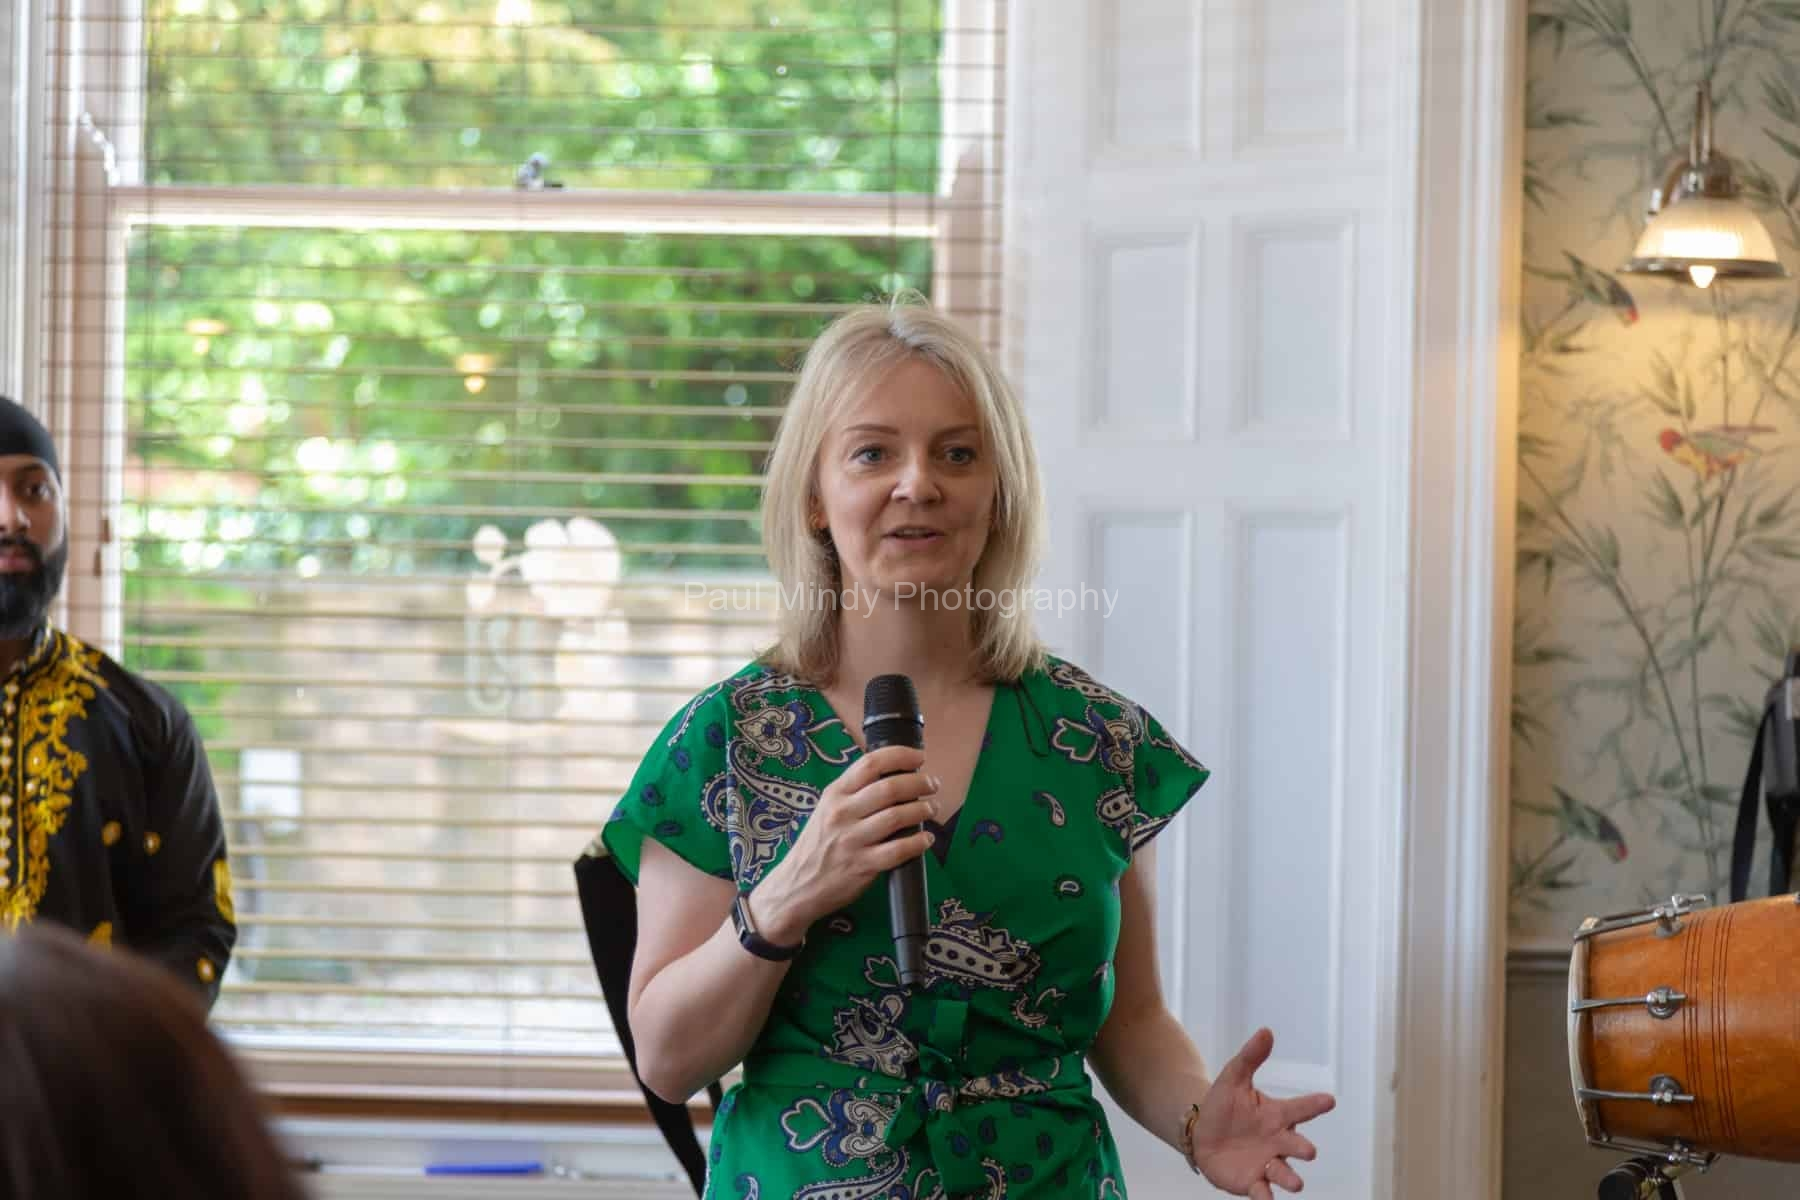 Punjabi-Festival-Launch-Liz-Truss-Thomas-Paine-4